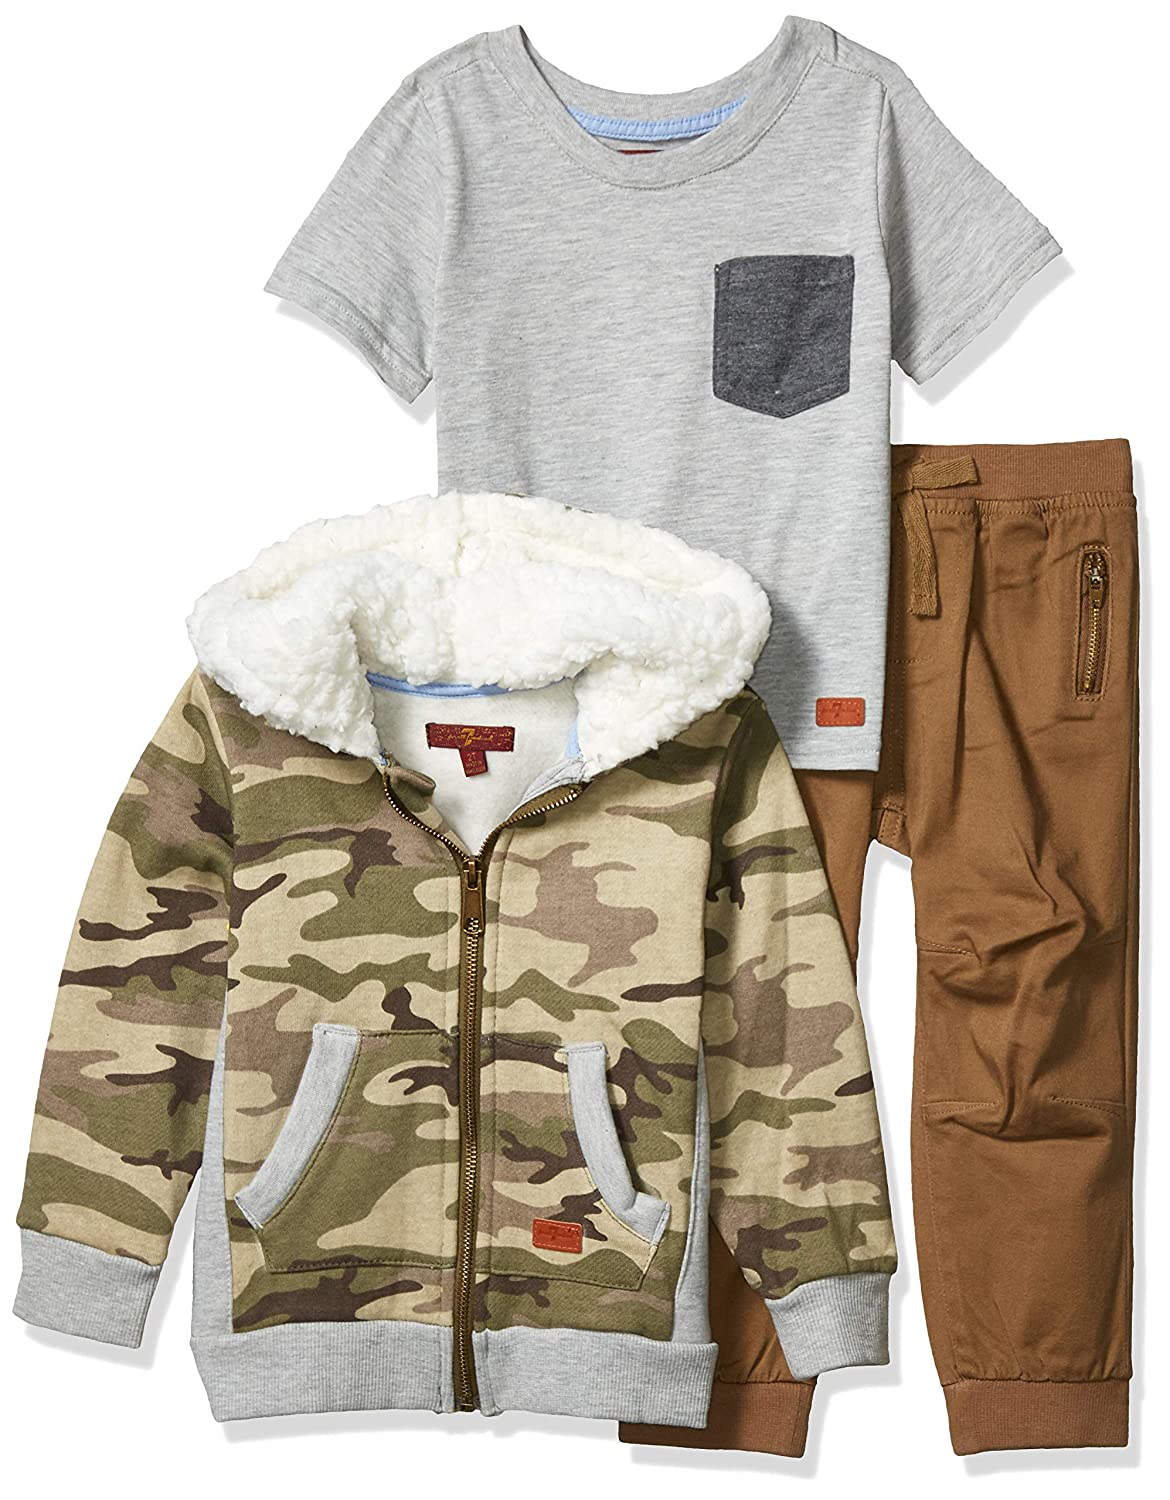 7 For All Mankind Boys Toddler 3 Piece Set